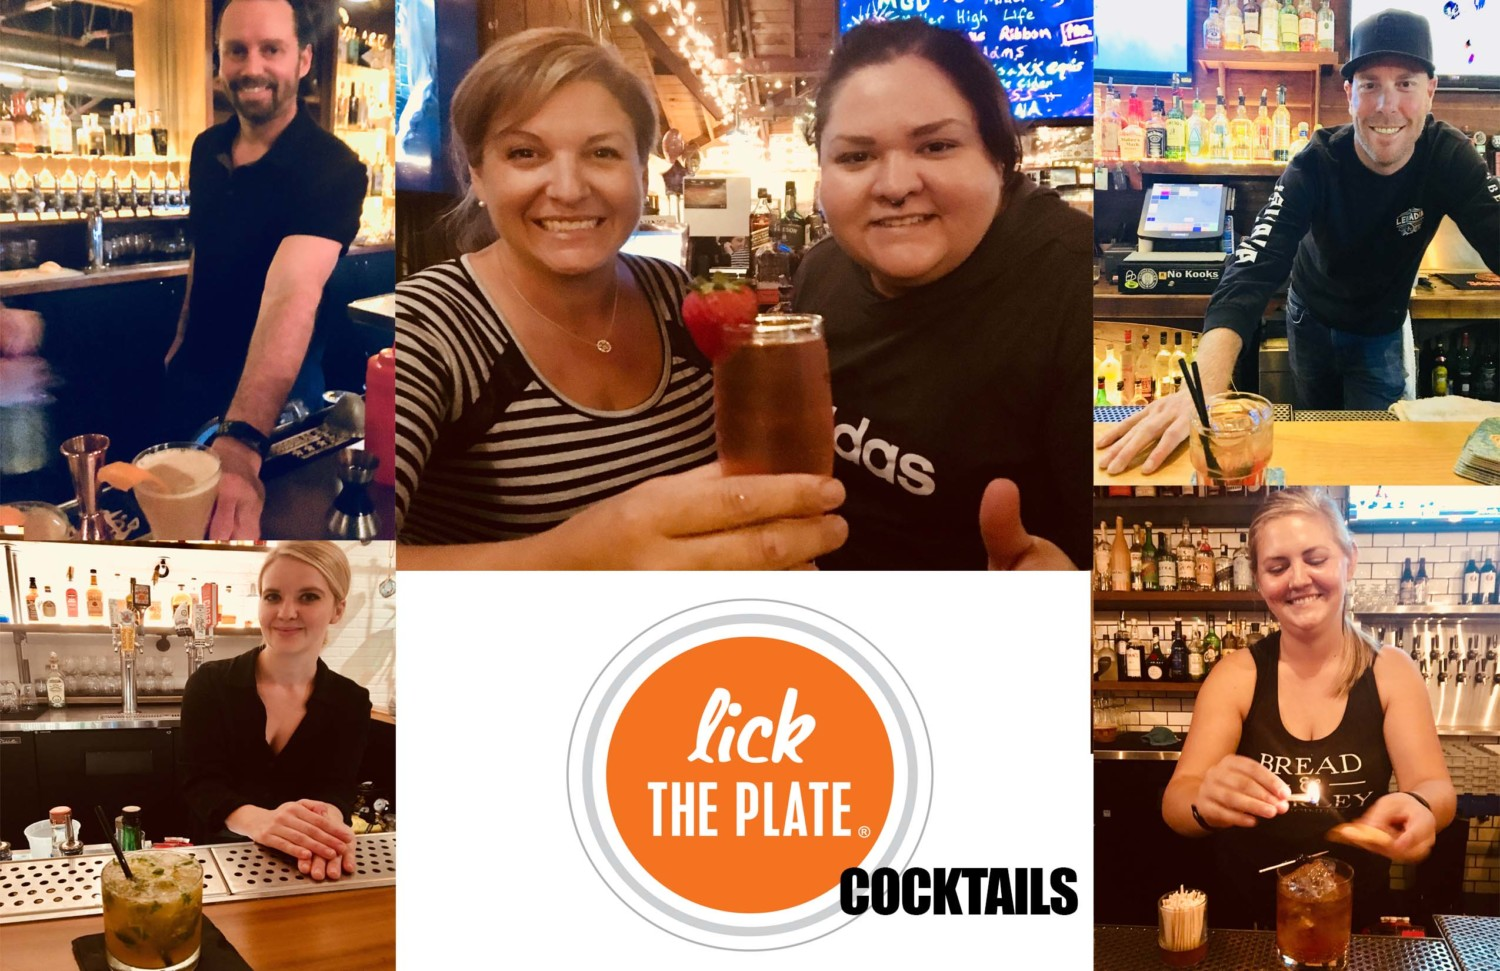 Lick the Plate's go-to cocktails in Encinitas